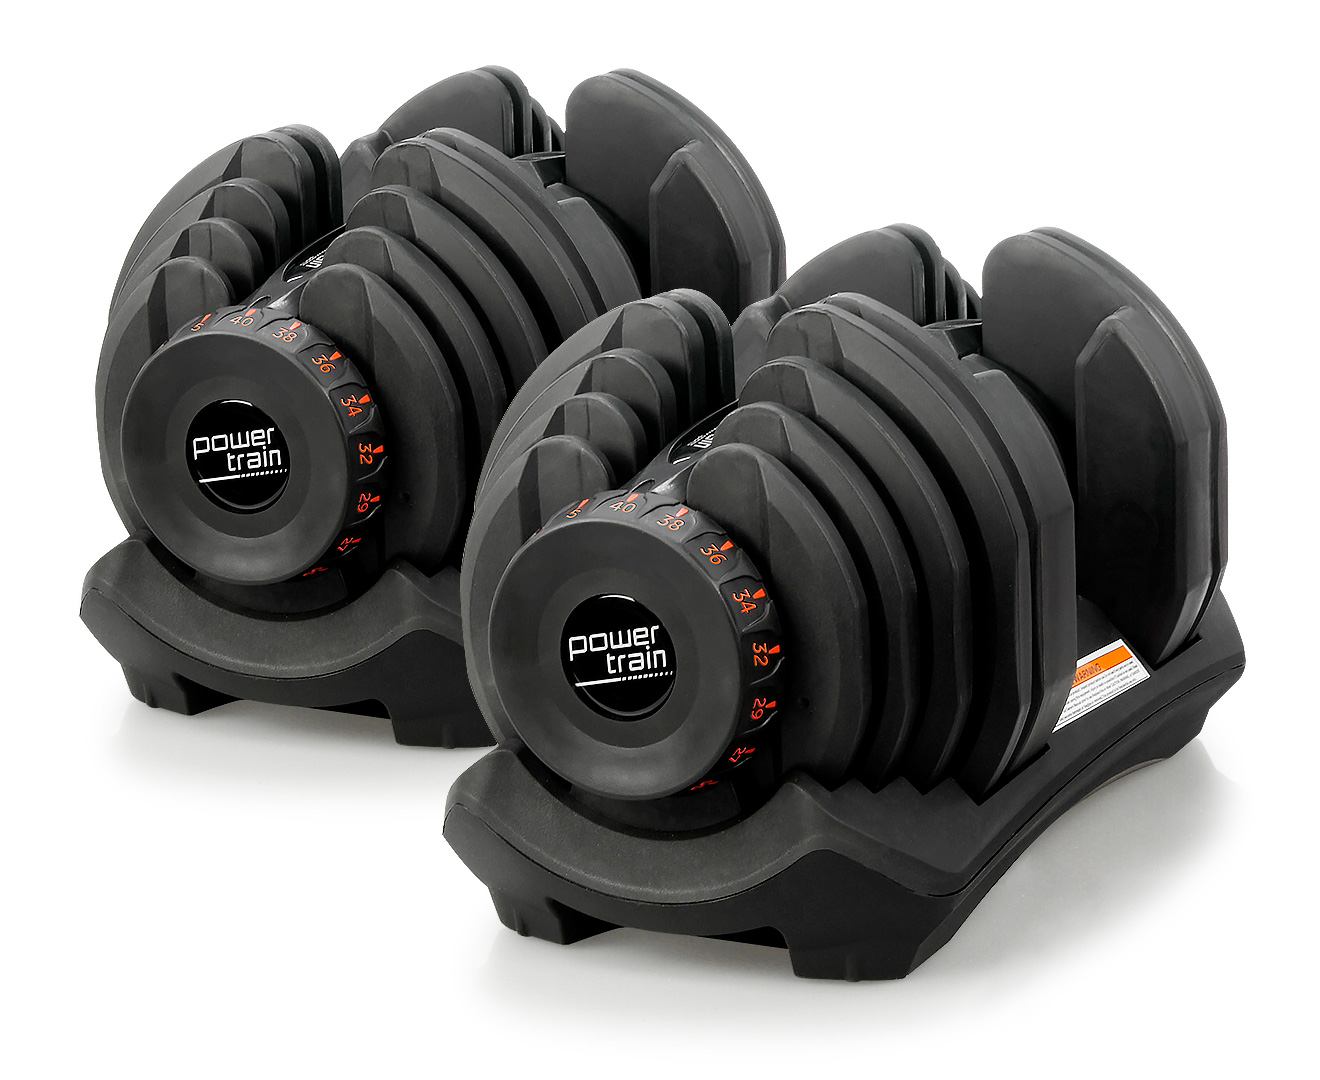 fd34f833284 h m s Remaining. New Adjustable Dumbbells Set Home Gym Exercise Equipment Free  Weights 80kg